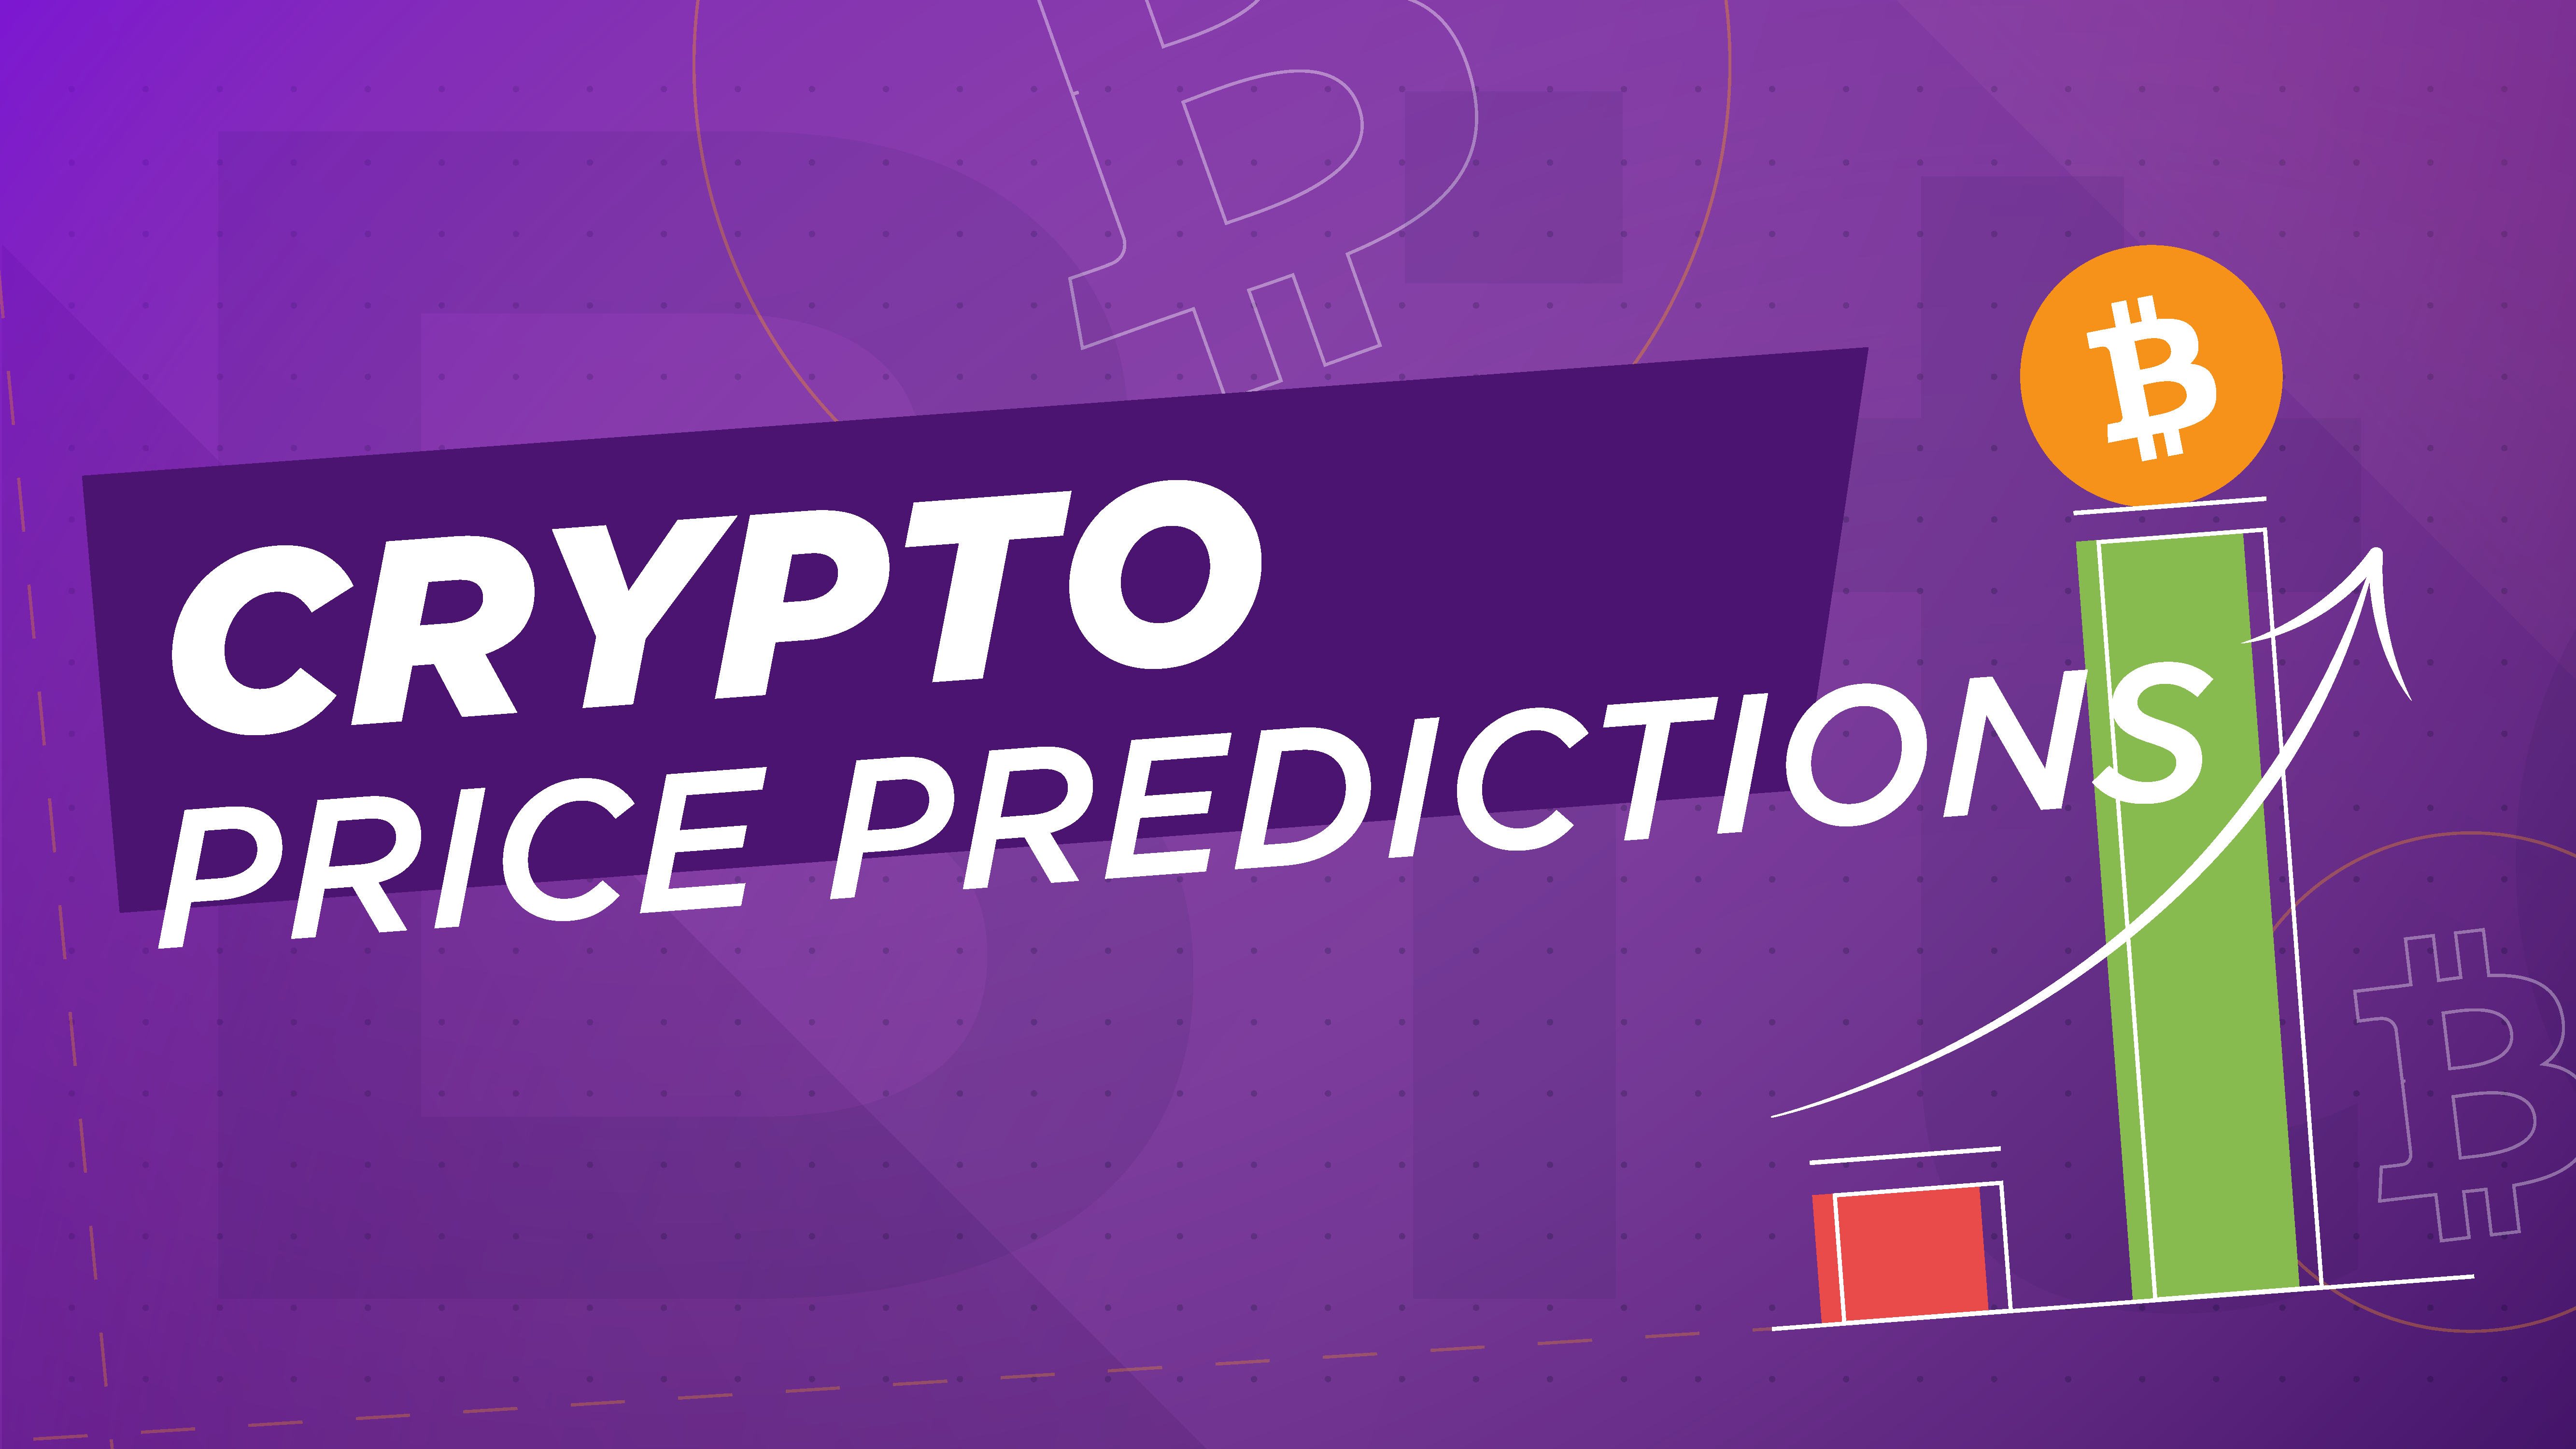 Crypto Price Predictions Bitcoin To 100 000 Ethereum To 3 000 More